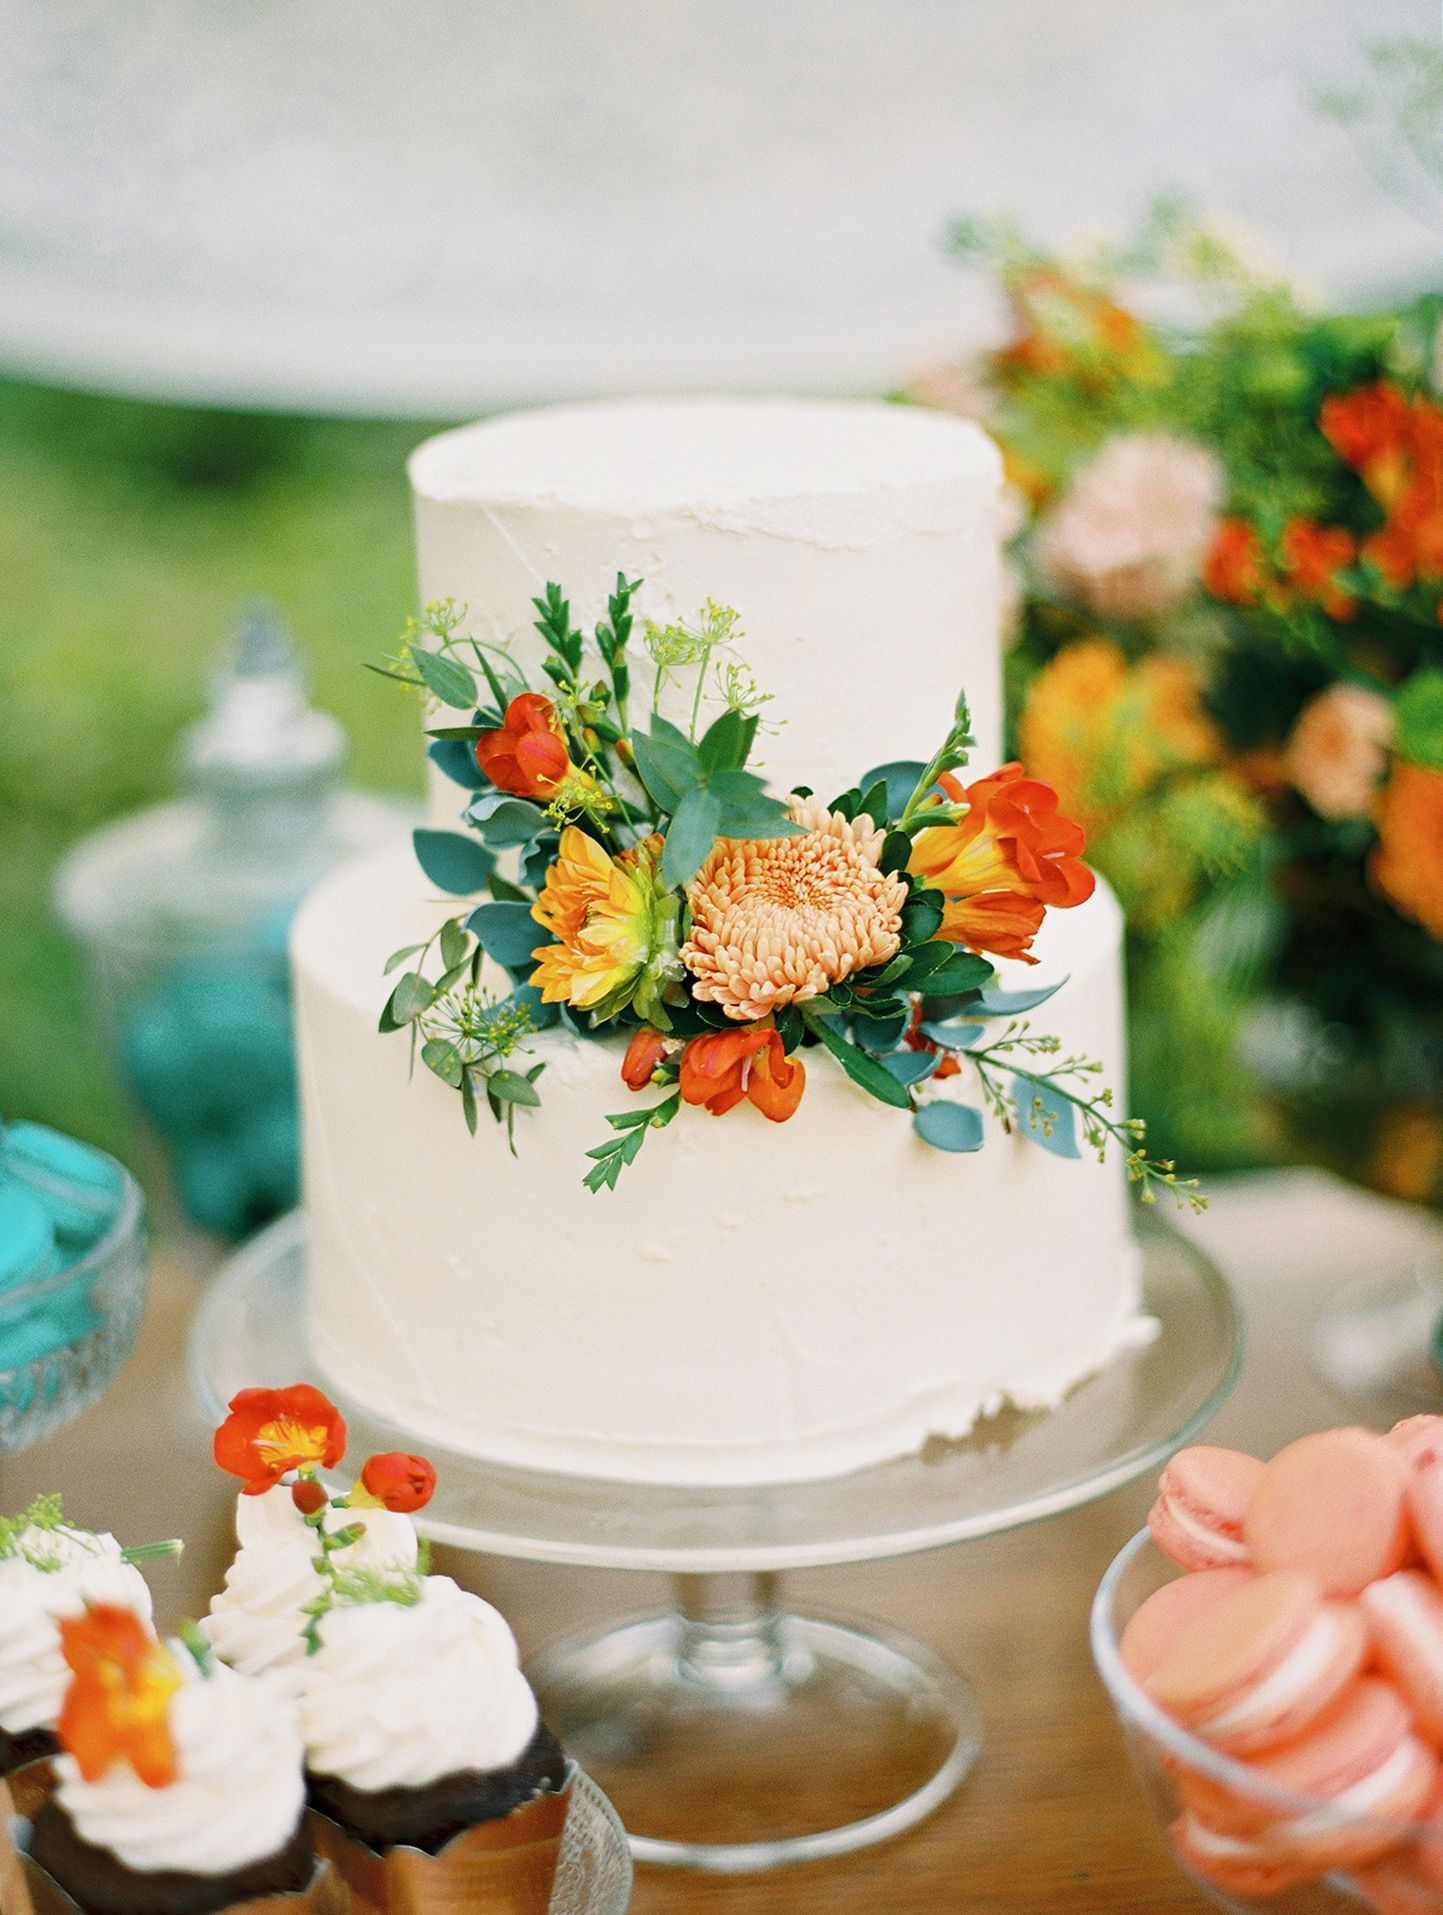 Simple White Cake Decorated With Fresh Flowers From The Season Rustic Wedding